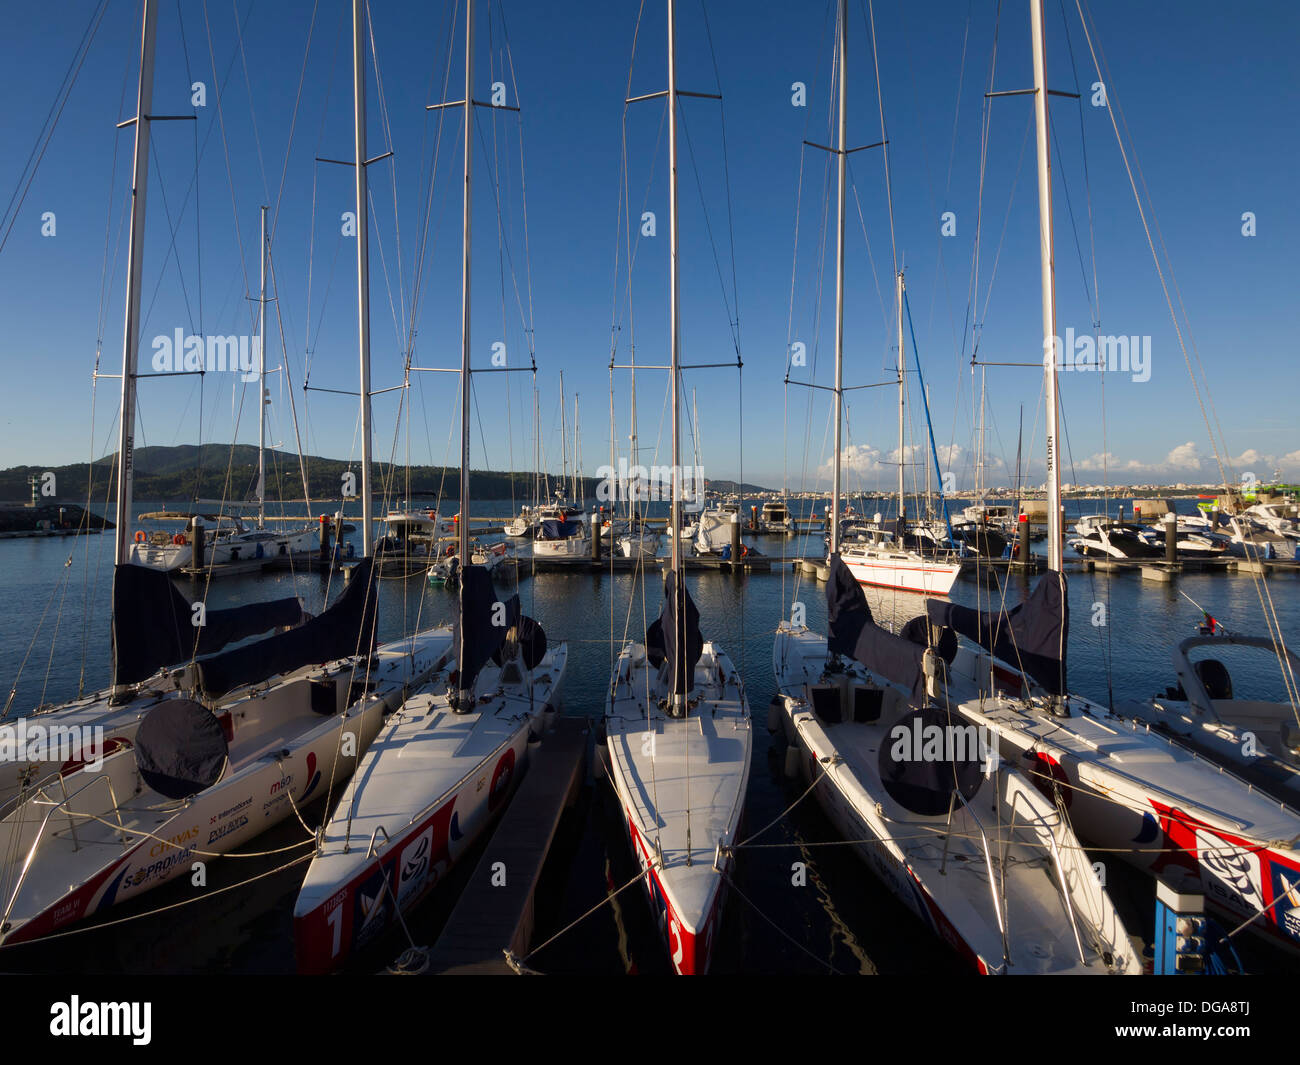 Sailboats anchored in the marina of Tróia, Portugal, Europe - Stock Image